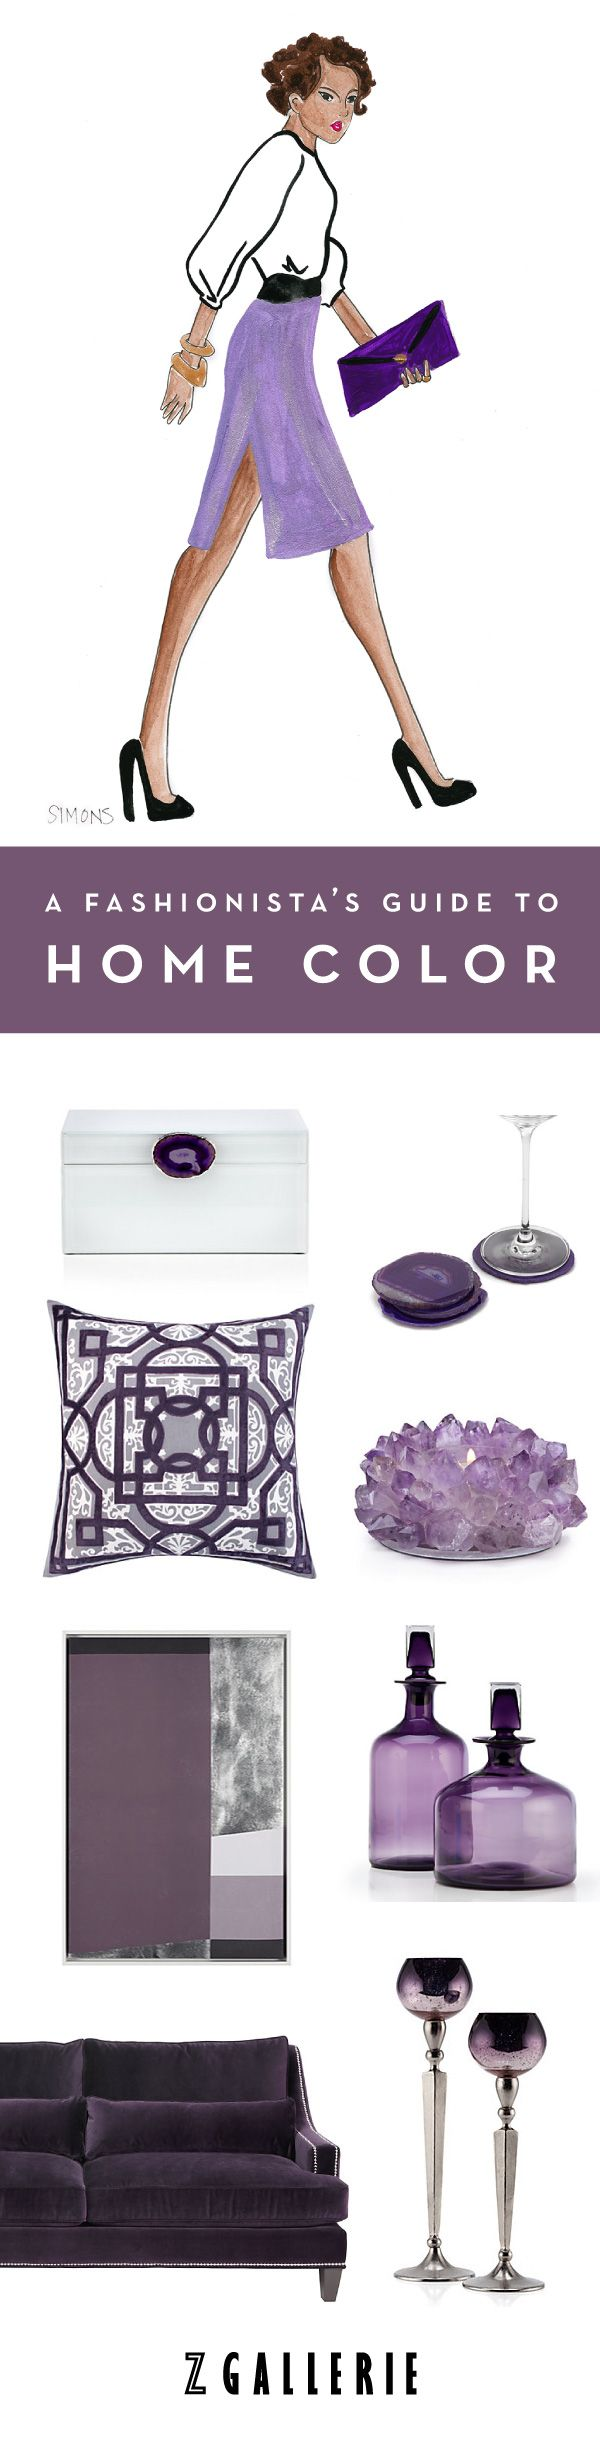 Discover our signature colors of the season and their complementary palettes to help you infuse color into a home you'll love. Explore our Fashionista's Guide to Home Color on zgallerie.com. Fashion illustrations by Andrea Michelle Simons.